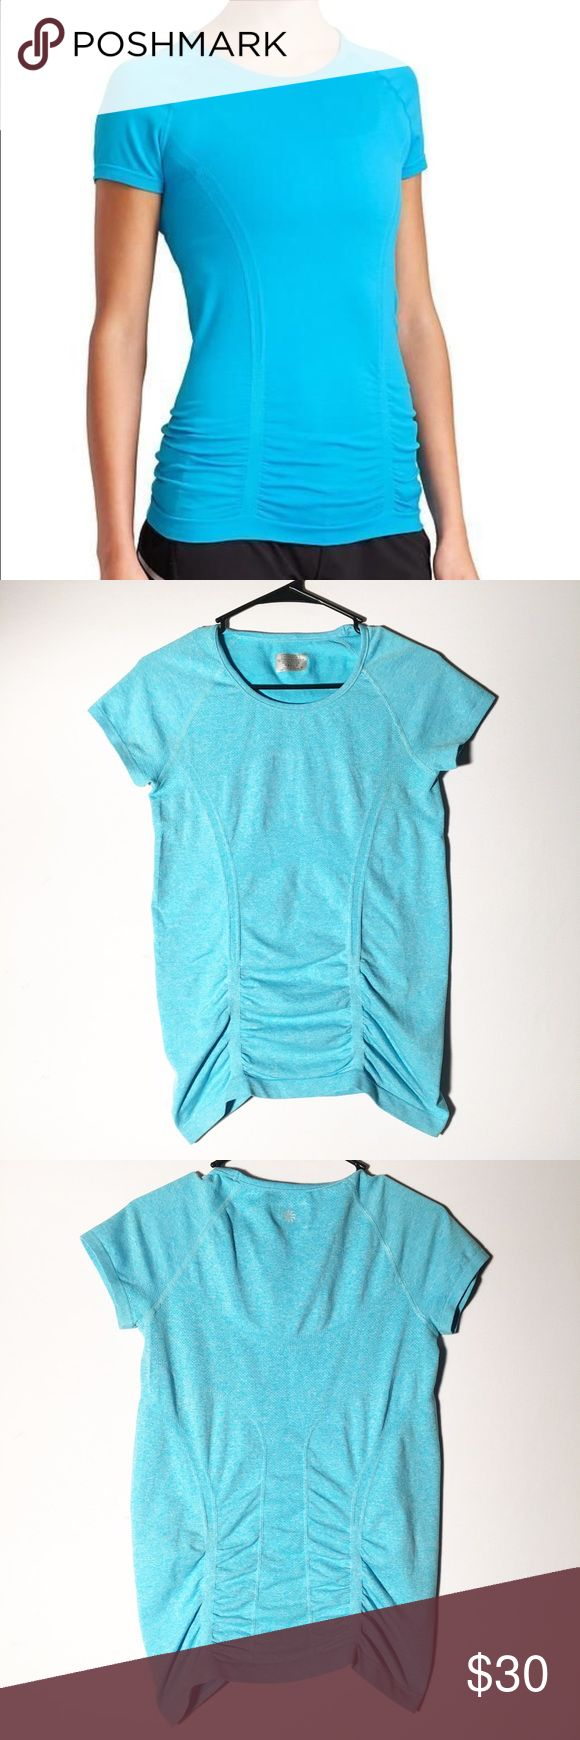 ✨Athleta fastest track aqua blue tee Size medium! Perfect for not riding up while working out or running! Make an offer! Athleta Tops Tees - Short Sleeve